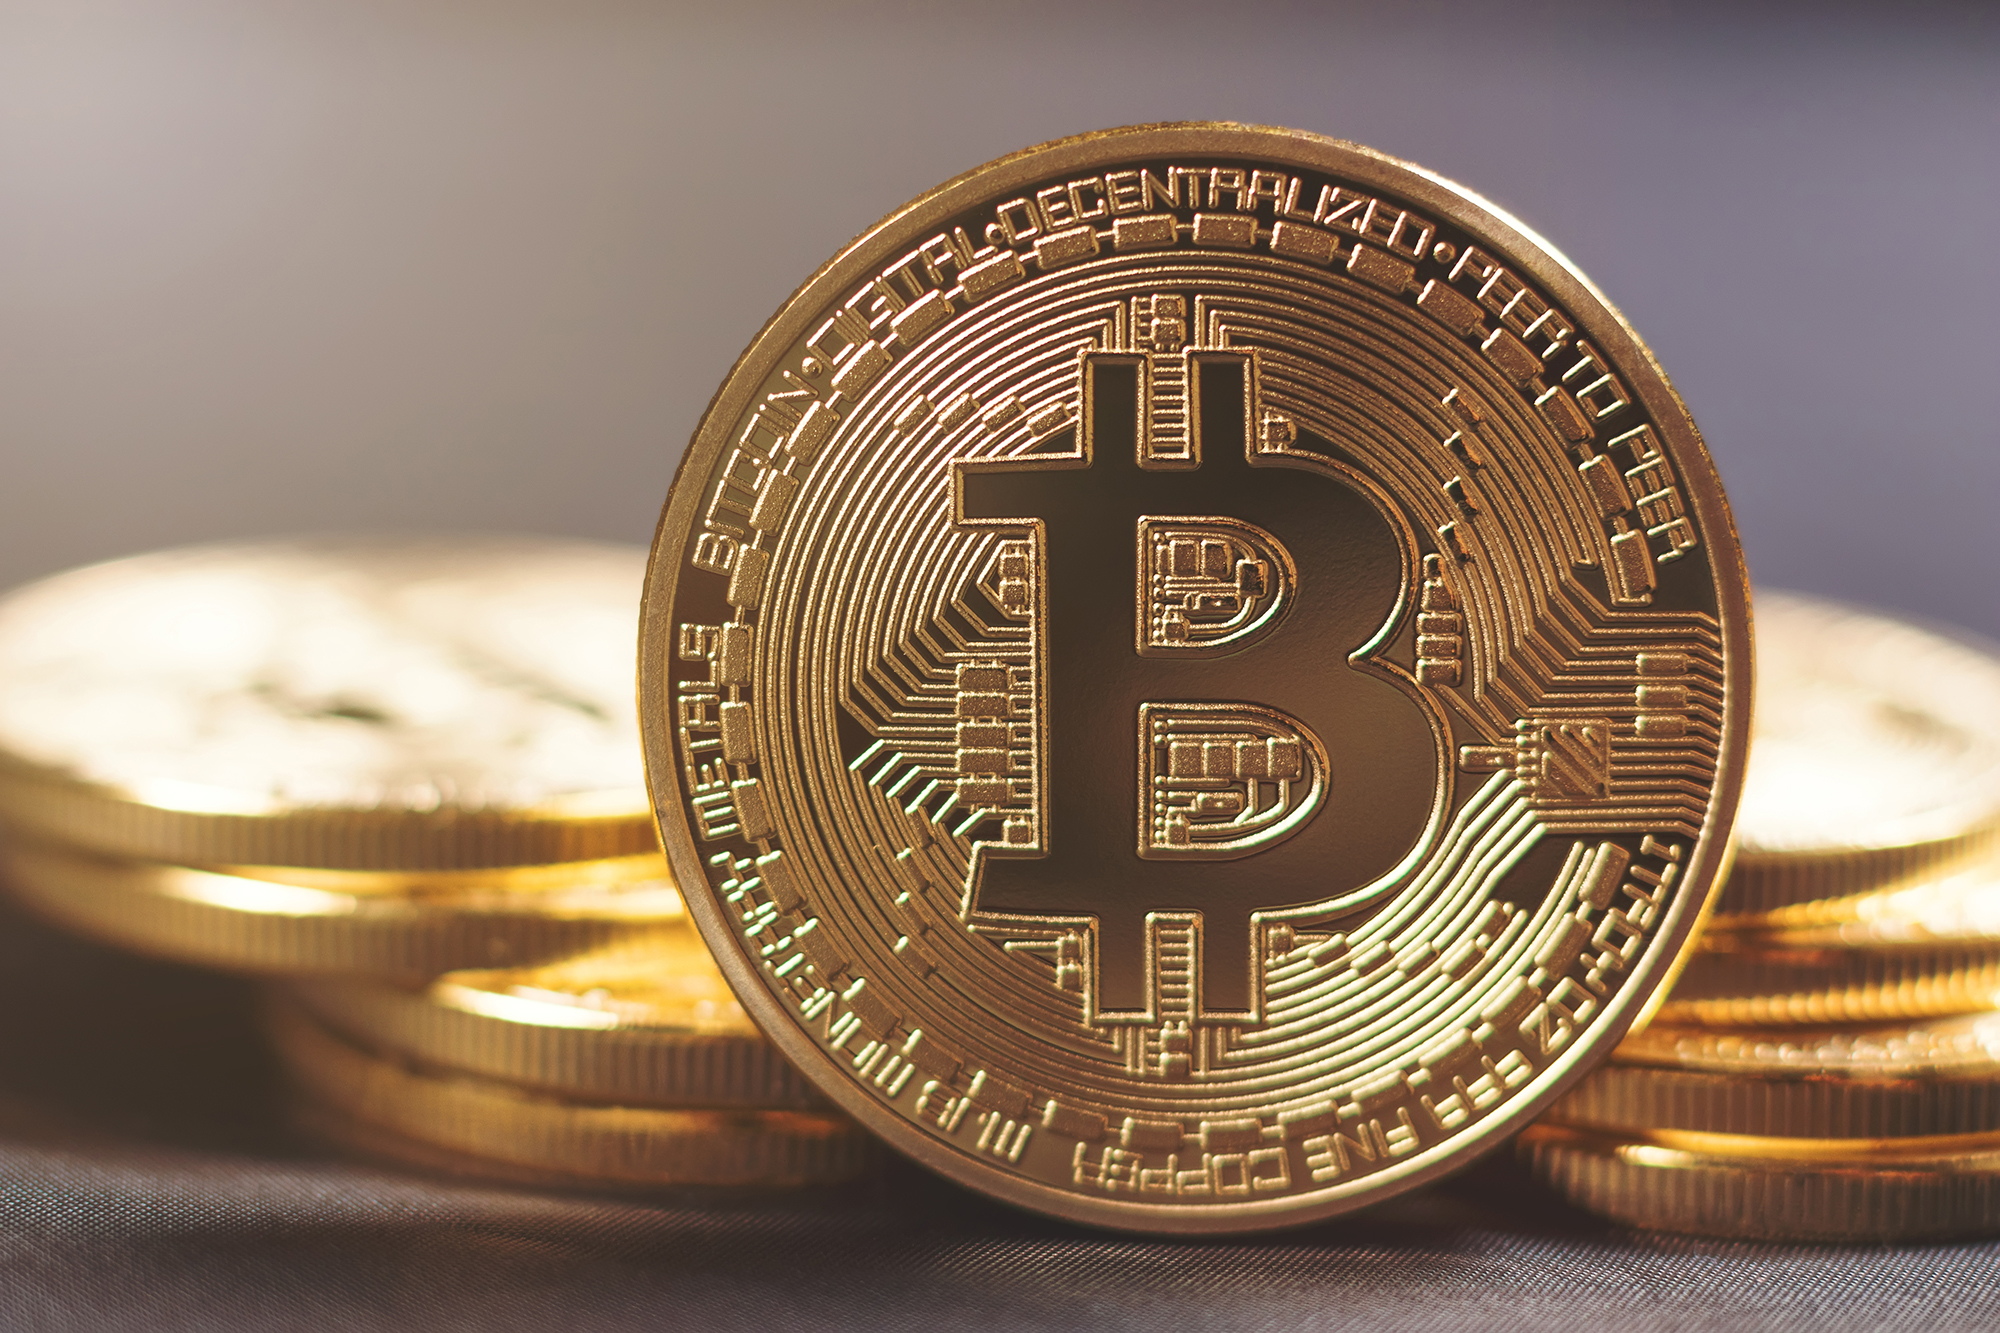 Here S How To Buy Bitcoin Without All The Risk Of Buying Bitcoin Cnn